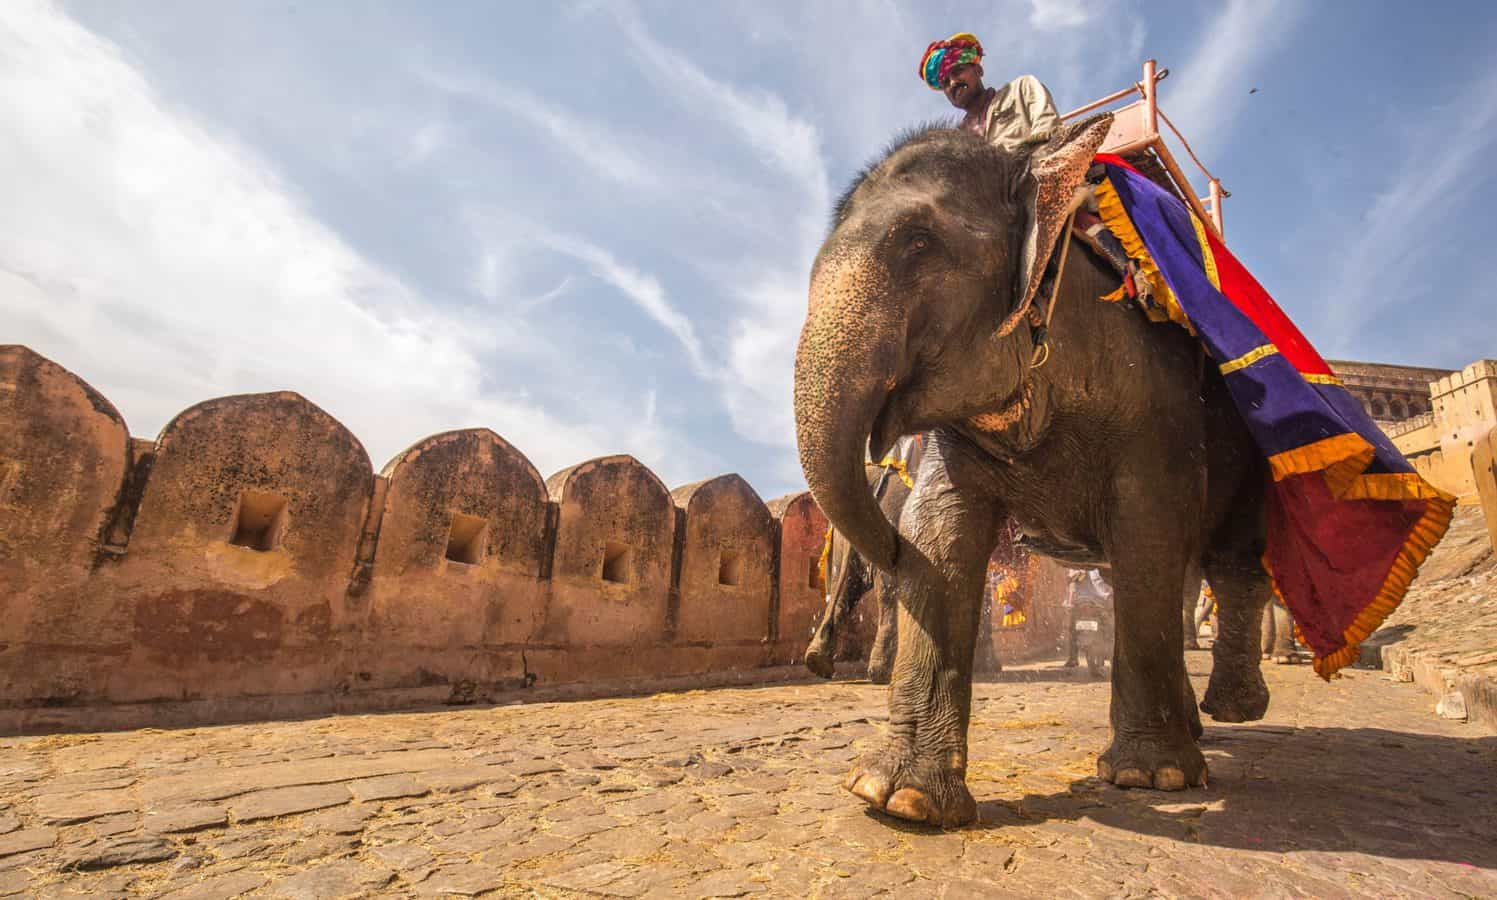 Elephant heading down hill without passengers as per new regulations to protect elephants in Jaipur, India - one of the most popular Jaipur attractions.